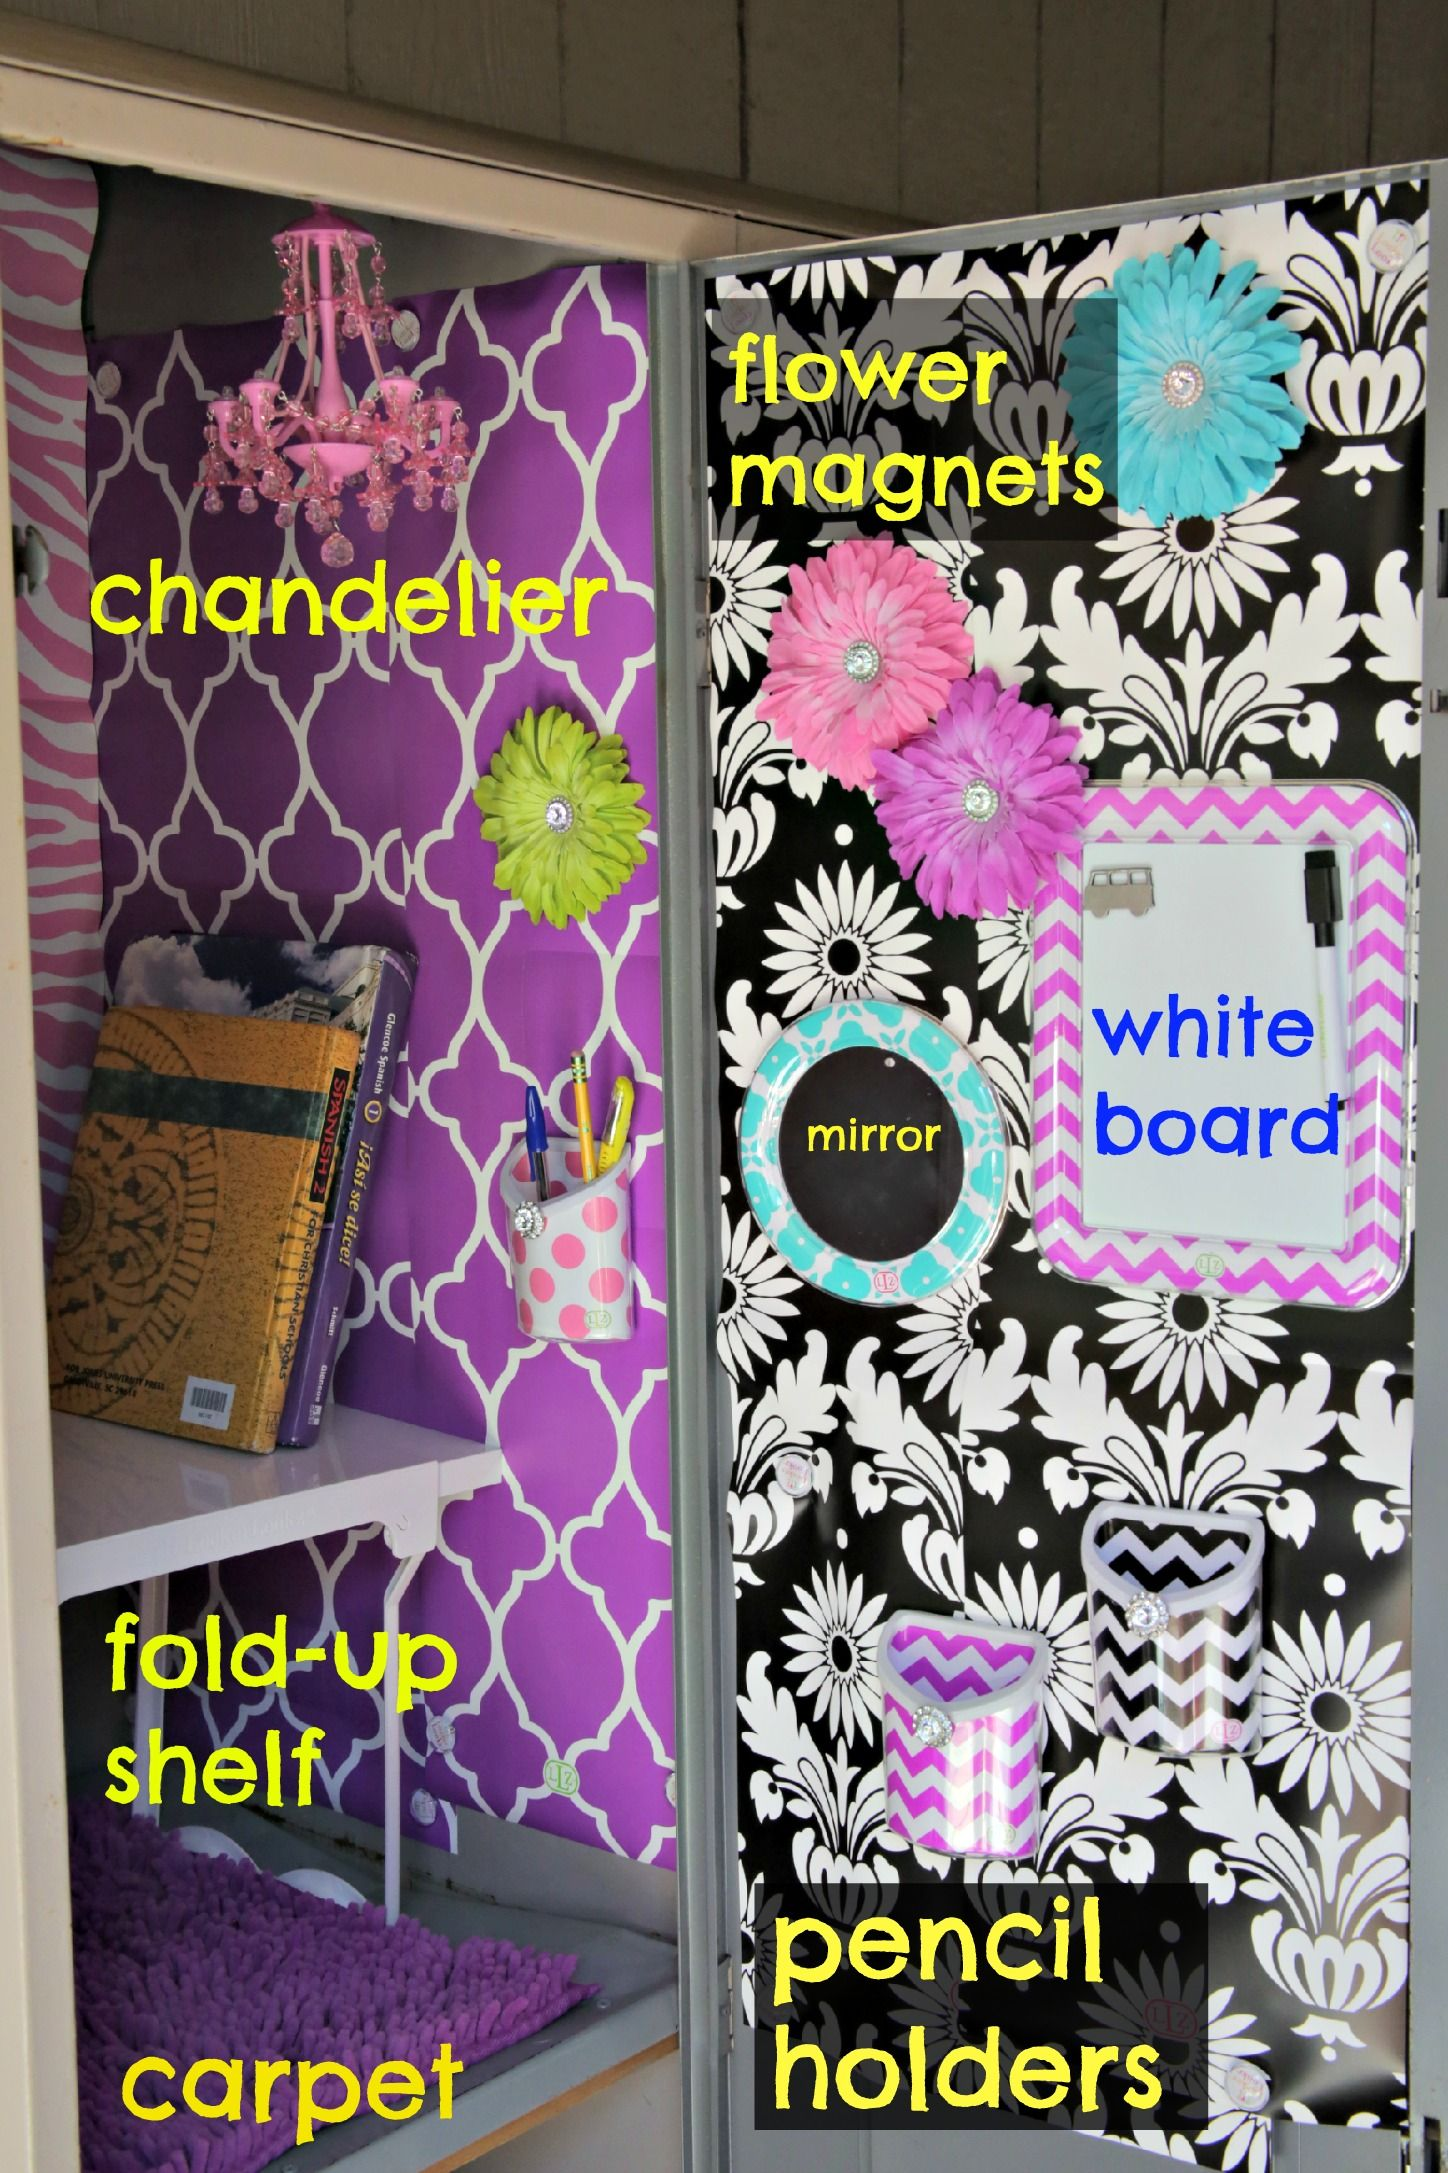 Locker Designs Ideas how to decorate a gym locker with lockerlookz Find This Pin And More On Locker Decorating Ideas